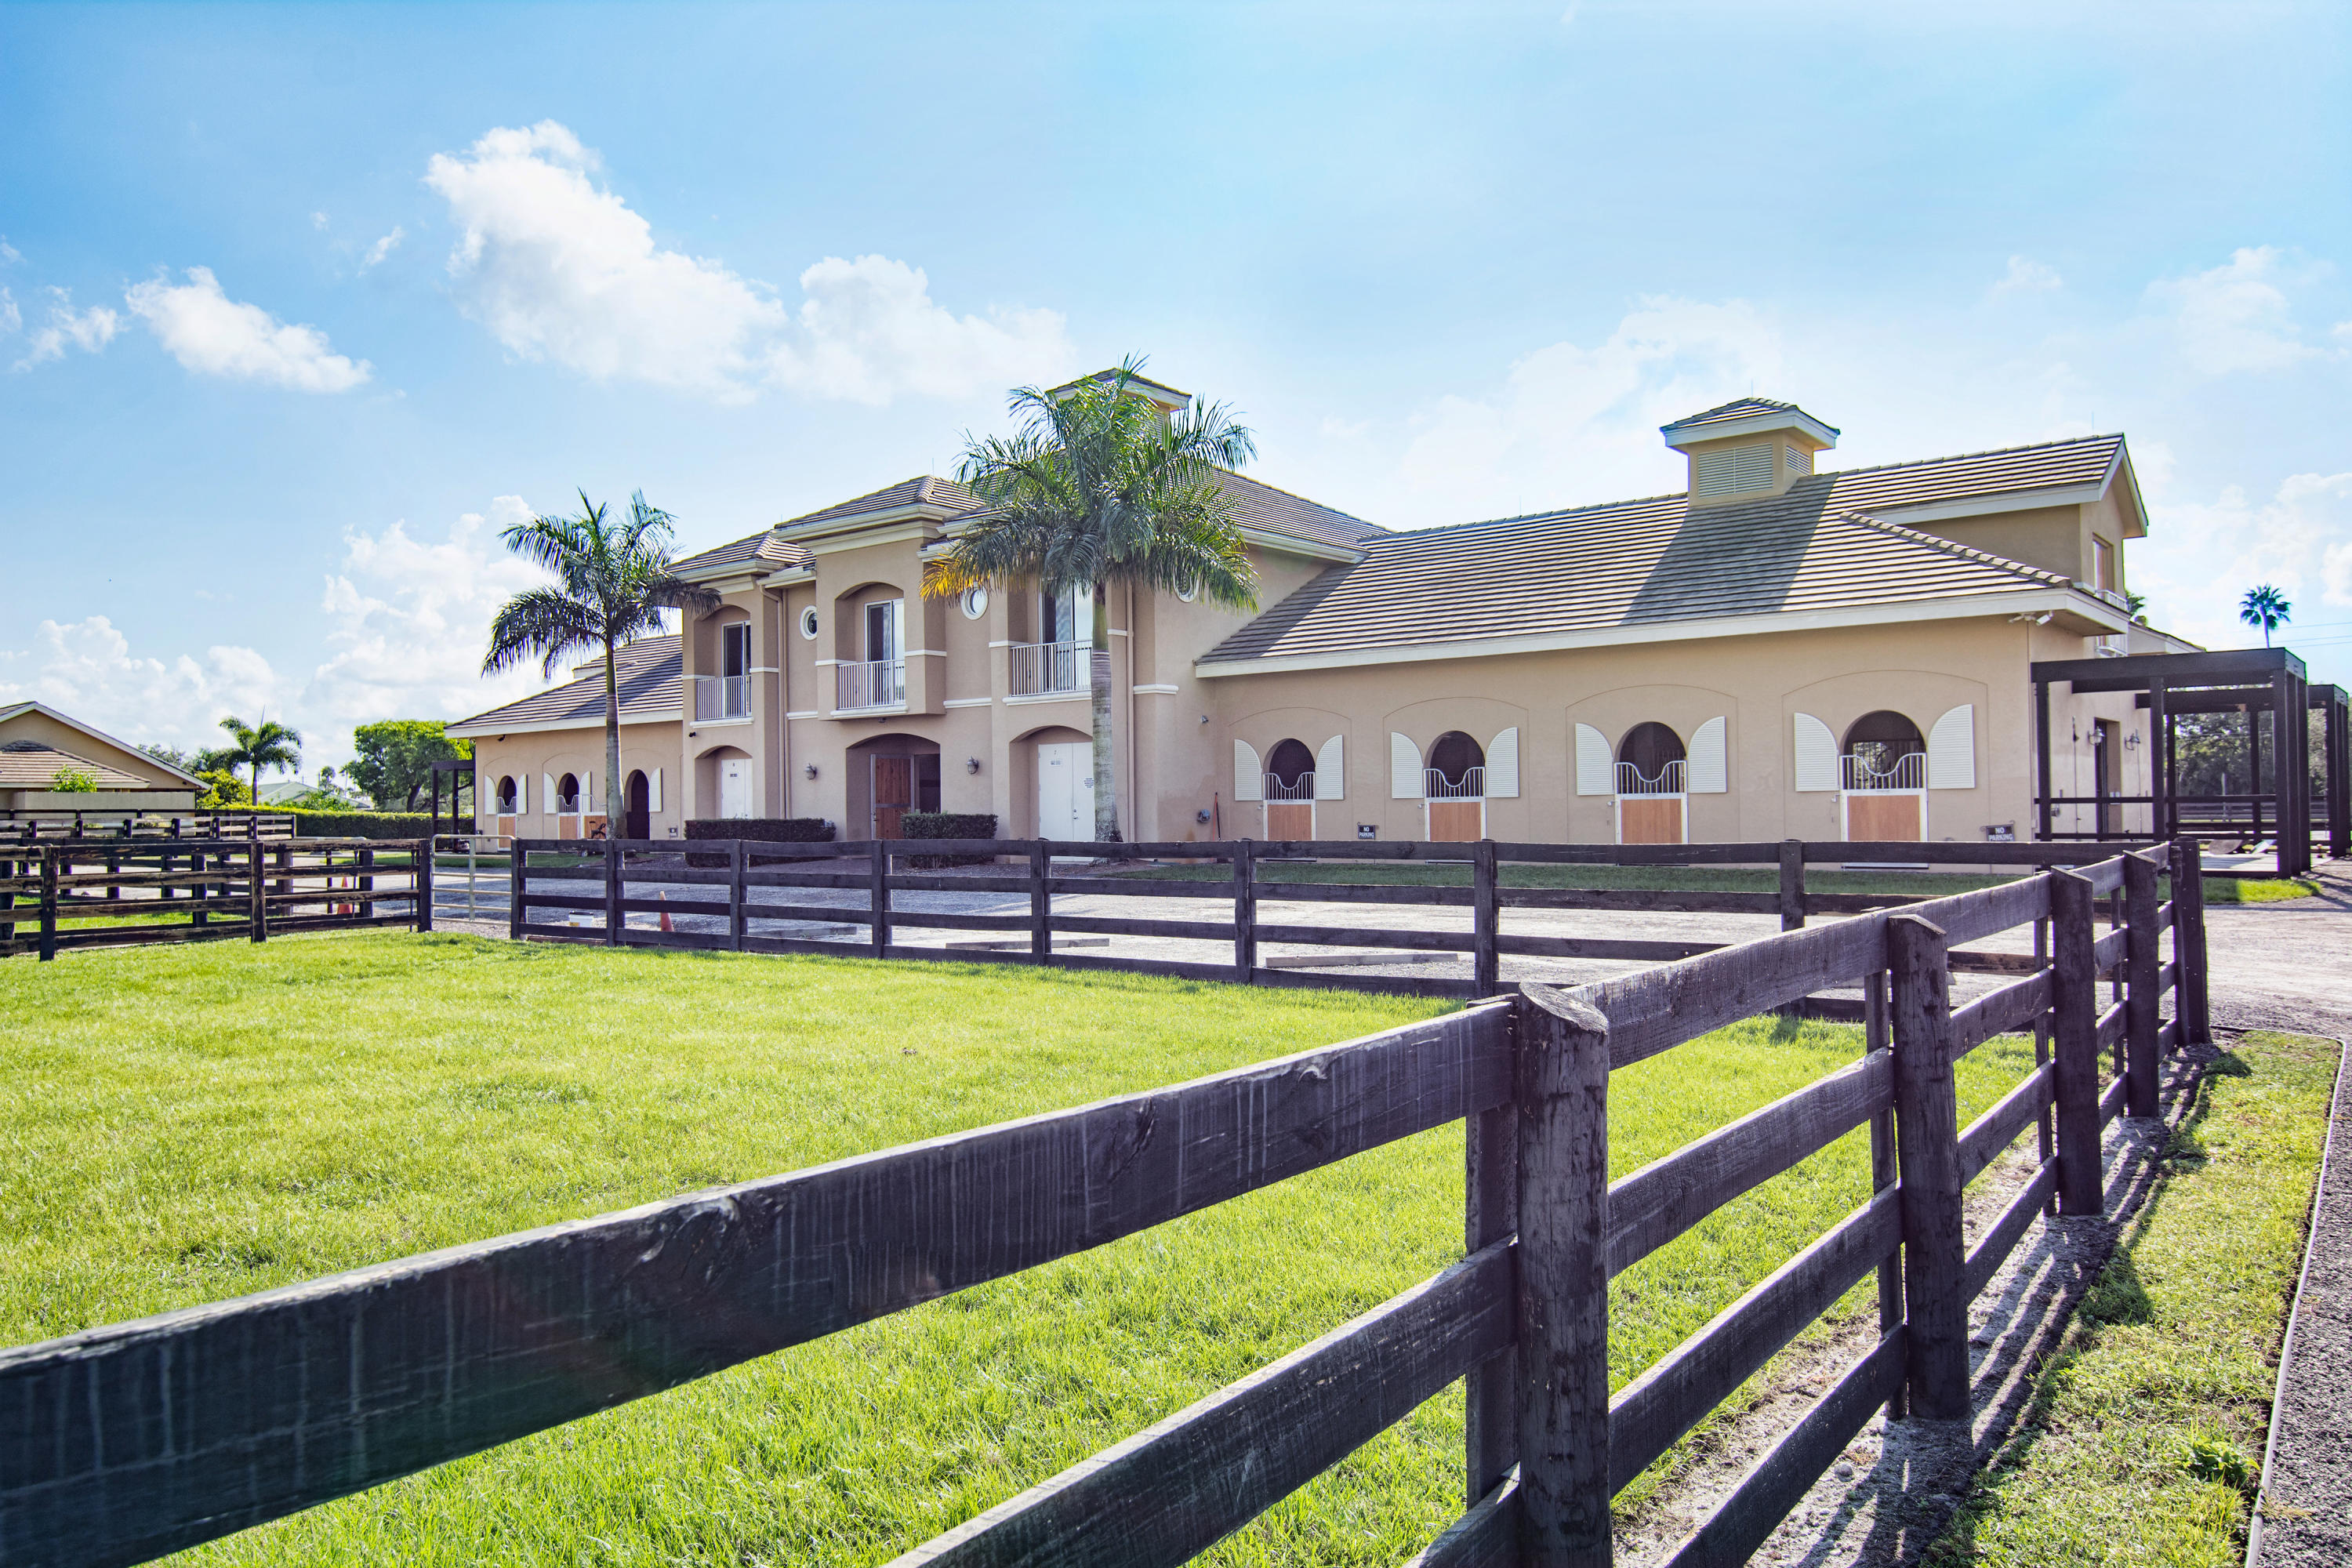 14596 Belmont Trace - Stalls, Wellington, Florida 33414, ,0.1 BathroomBathrooms,Barn,For Rent,Belmont Trace - Stalls,RX-10510696